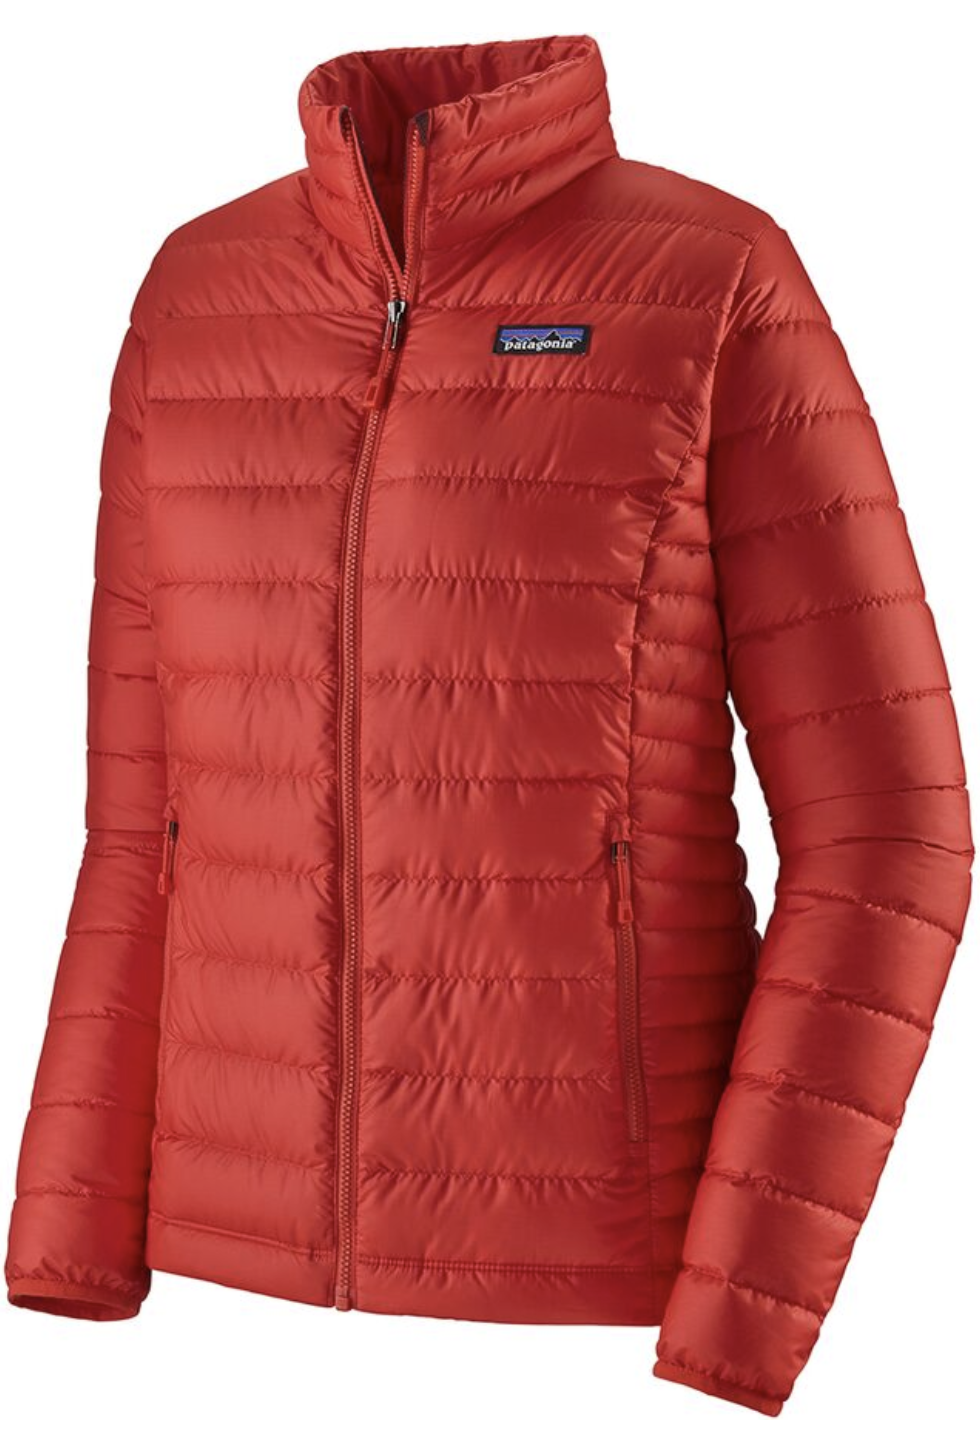 We're scooping up essentials at Backcountry for fall & winter — think pullovers & jackets from Prana, Patagonia & The North Face...cozy outdoor gear.